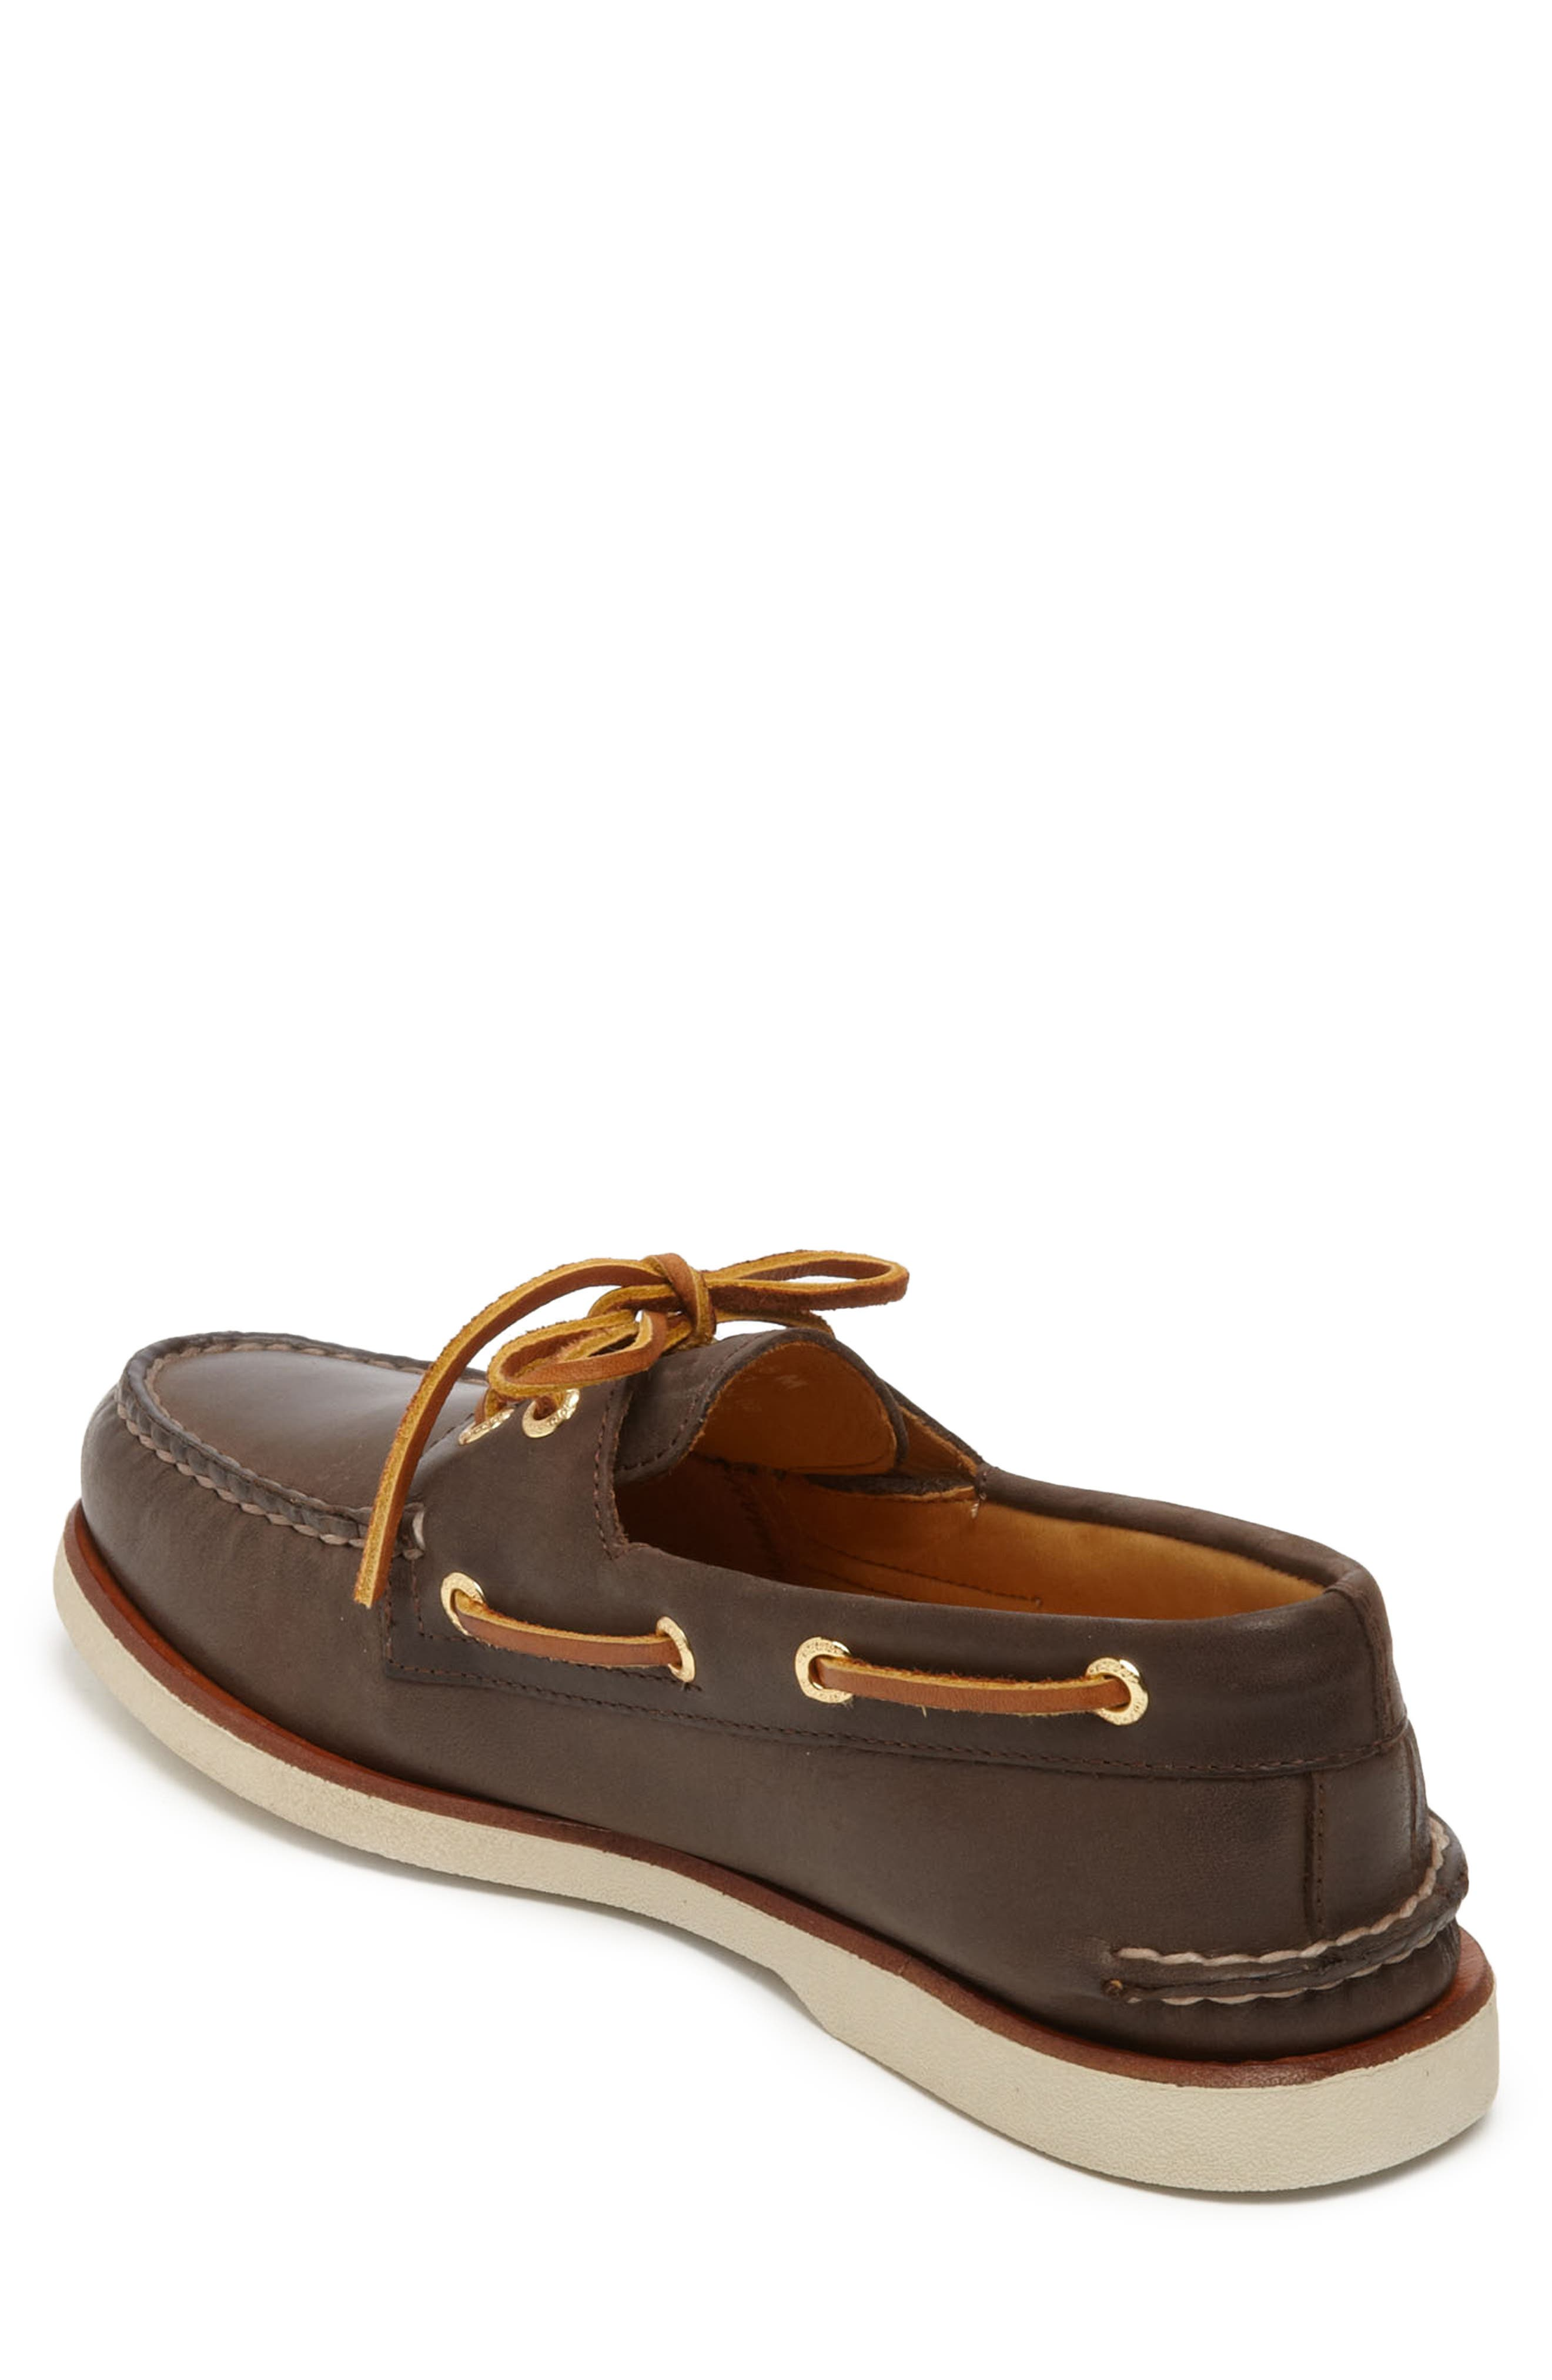 SPERRY, 'Gold Cup - Authentic Original' Boat Shoe, Alternate thumbnail 2, color, DARK BROWN LEATHER